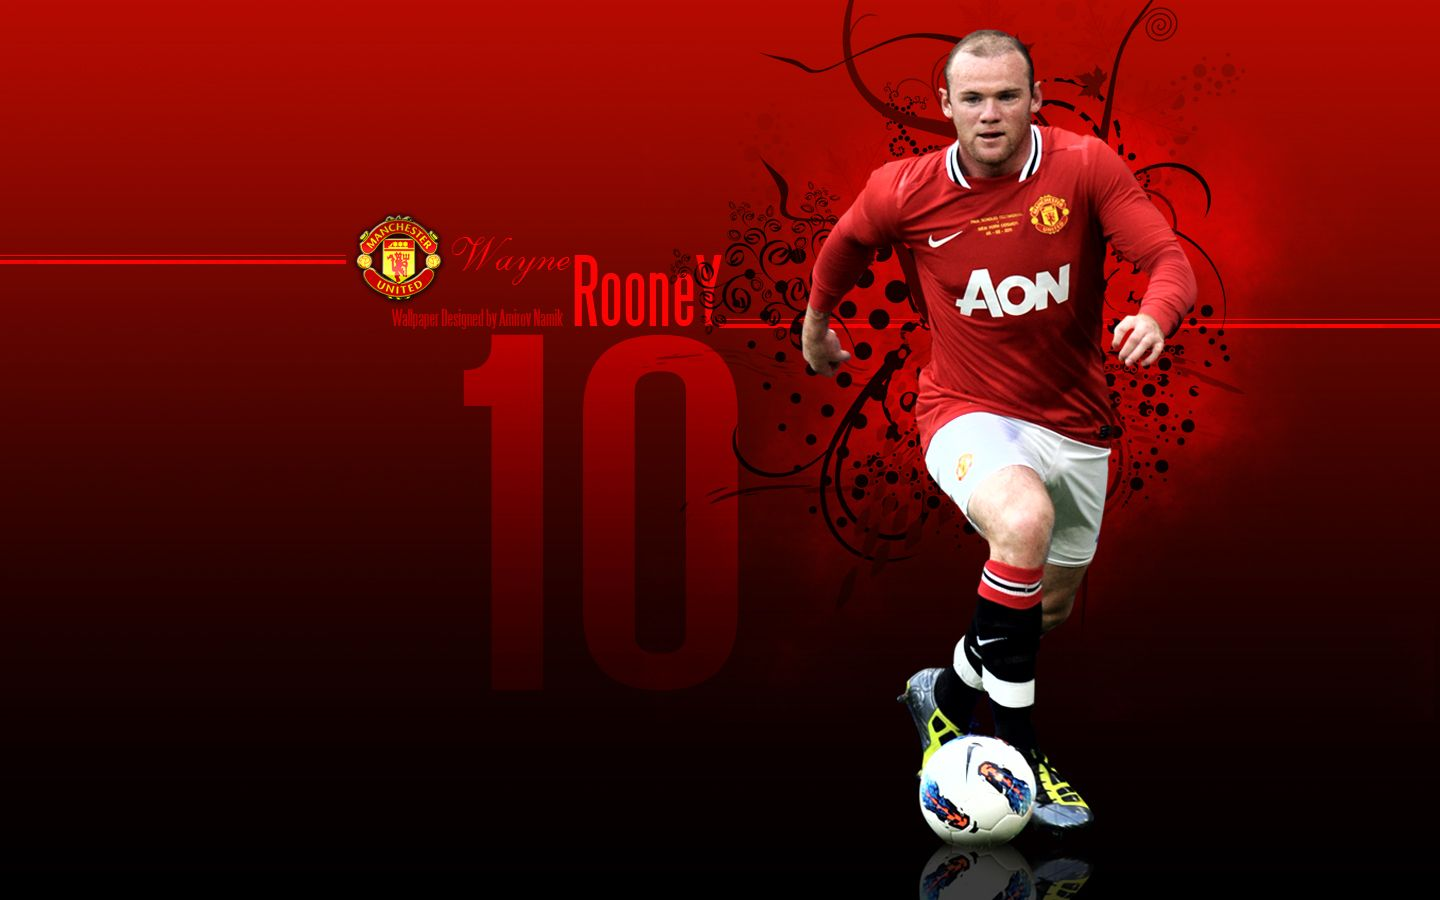 Best manchester city logo ideas on pinterest manchester city wayne mark rooney is an english footballer who plays as a forward for premier league club manchester united and the england national team voltagebd Image collections